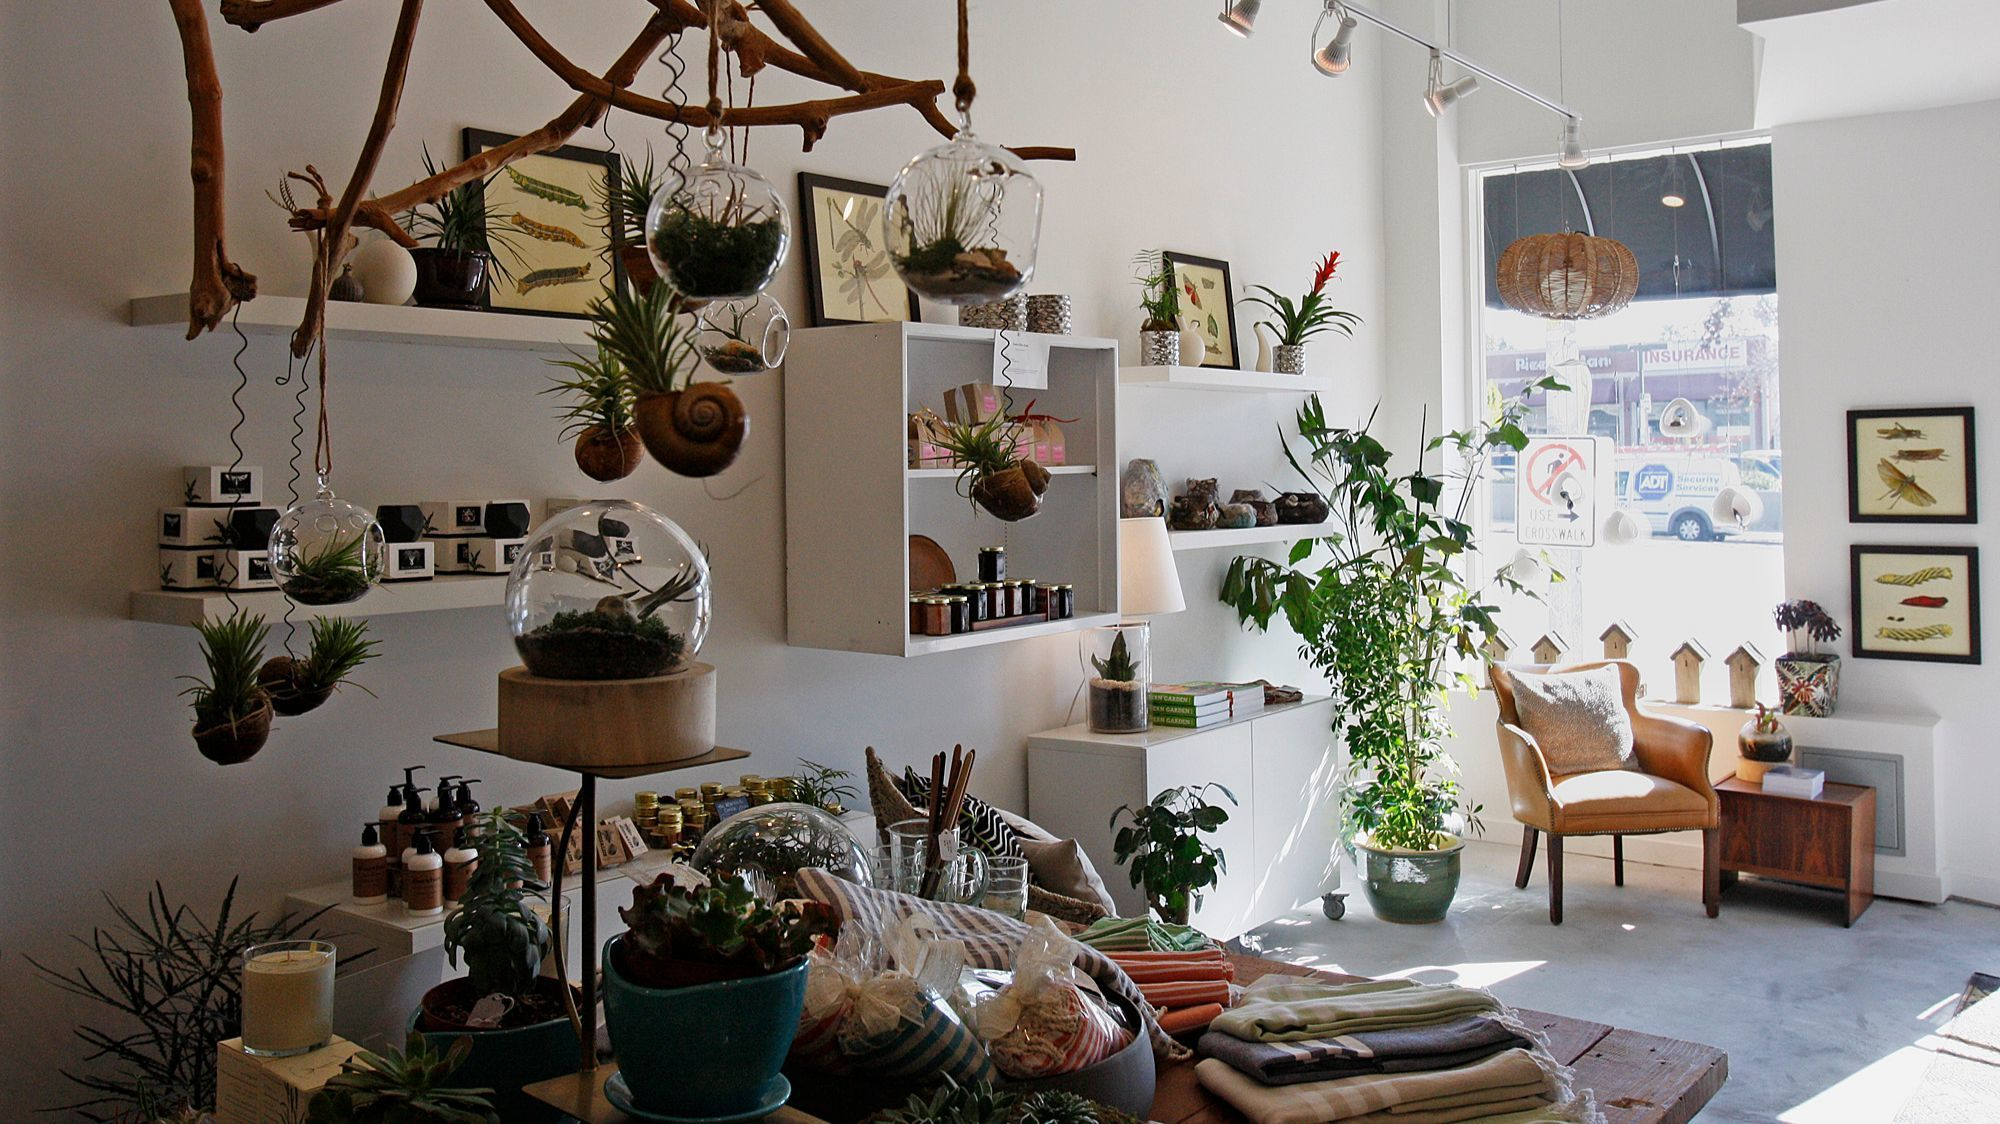 LOS ANGELES, CALIFORNIA - DECEMBER 31, 2013: A mix of terrariums, cermamics, botanical art and other